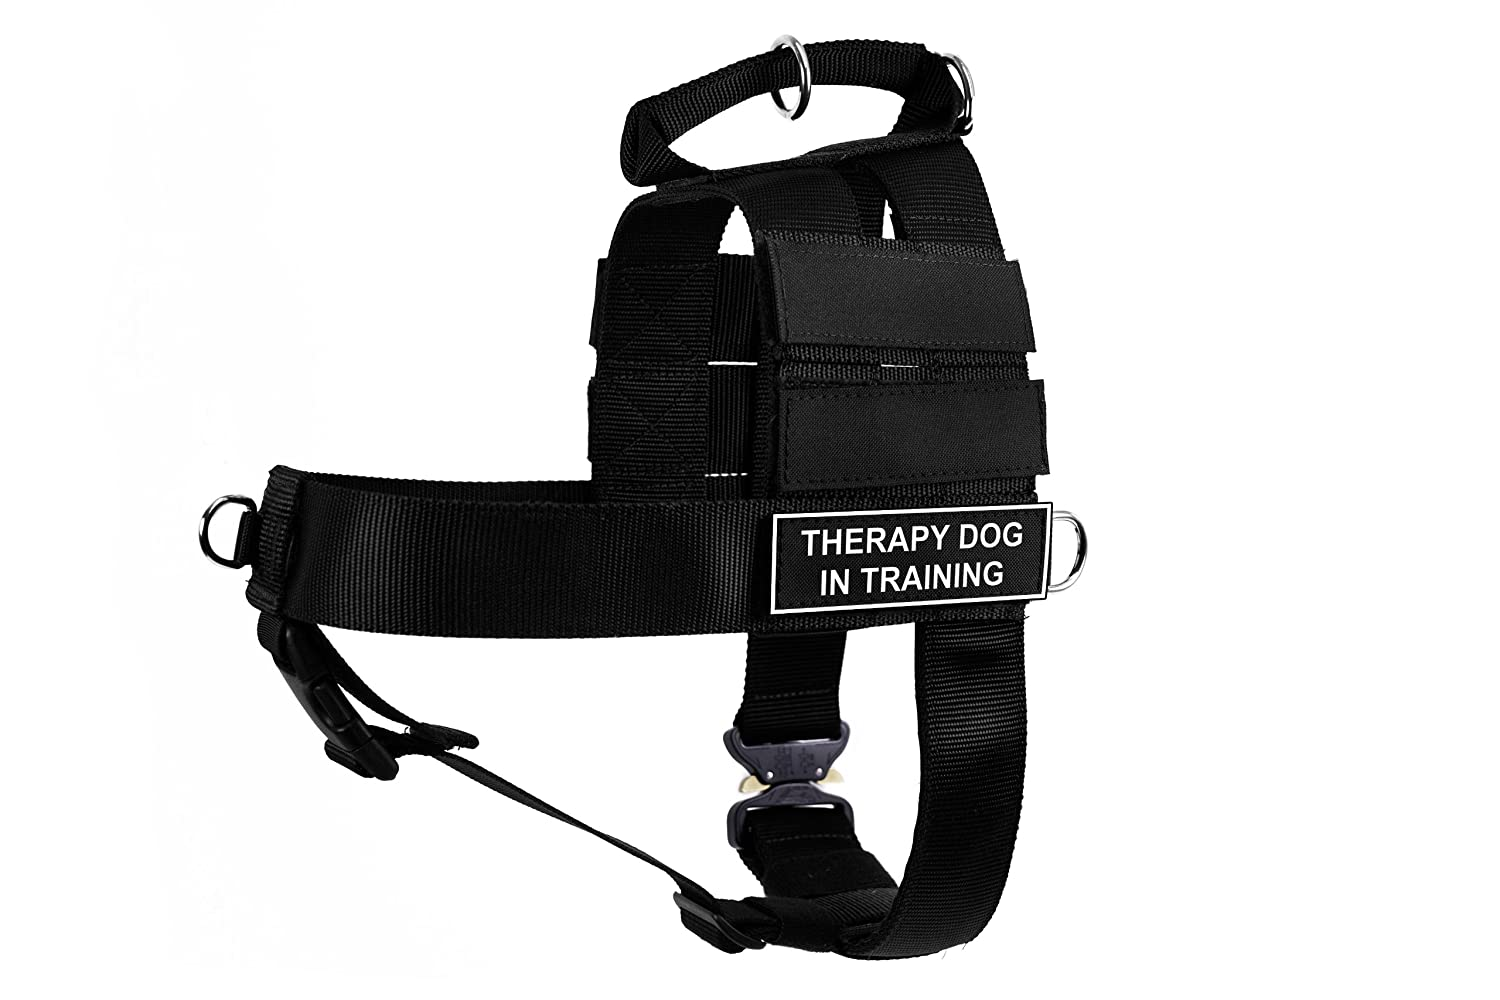 Dean & Tyler DT Cobra Therapy Dog in Training  No Pull Harness, Small, Black